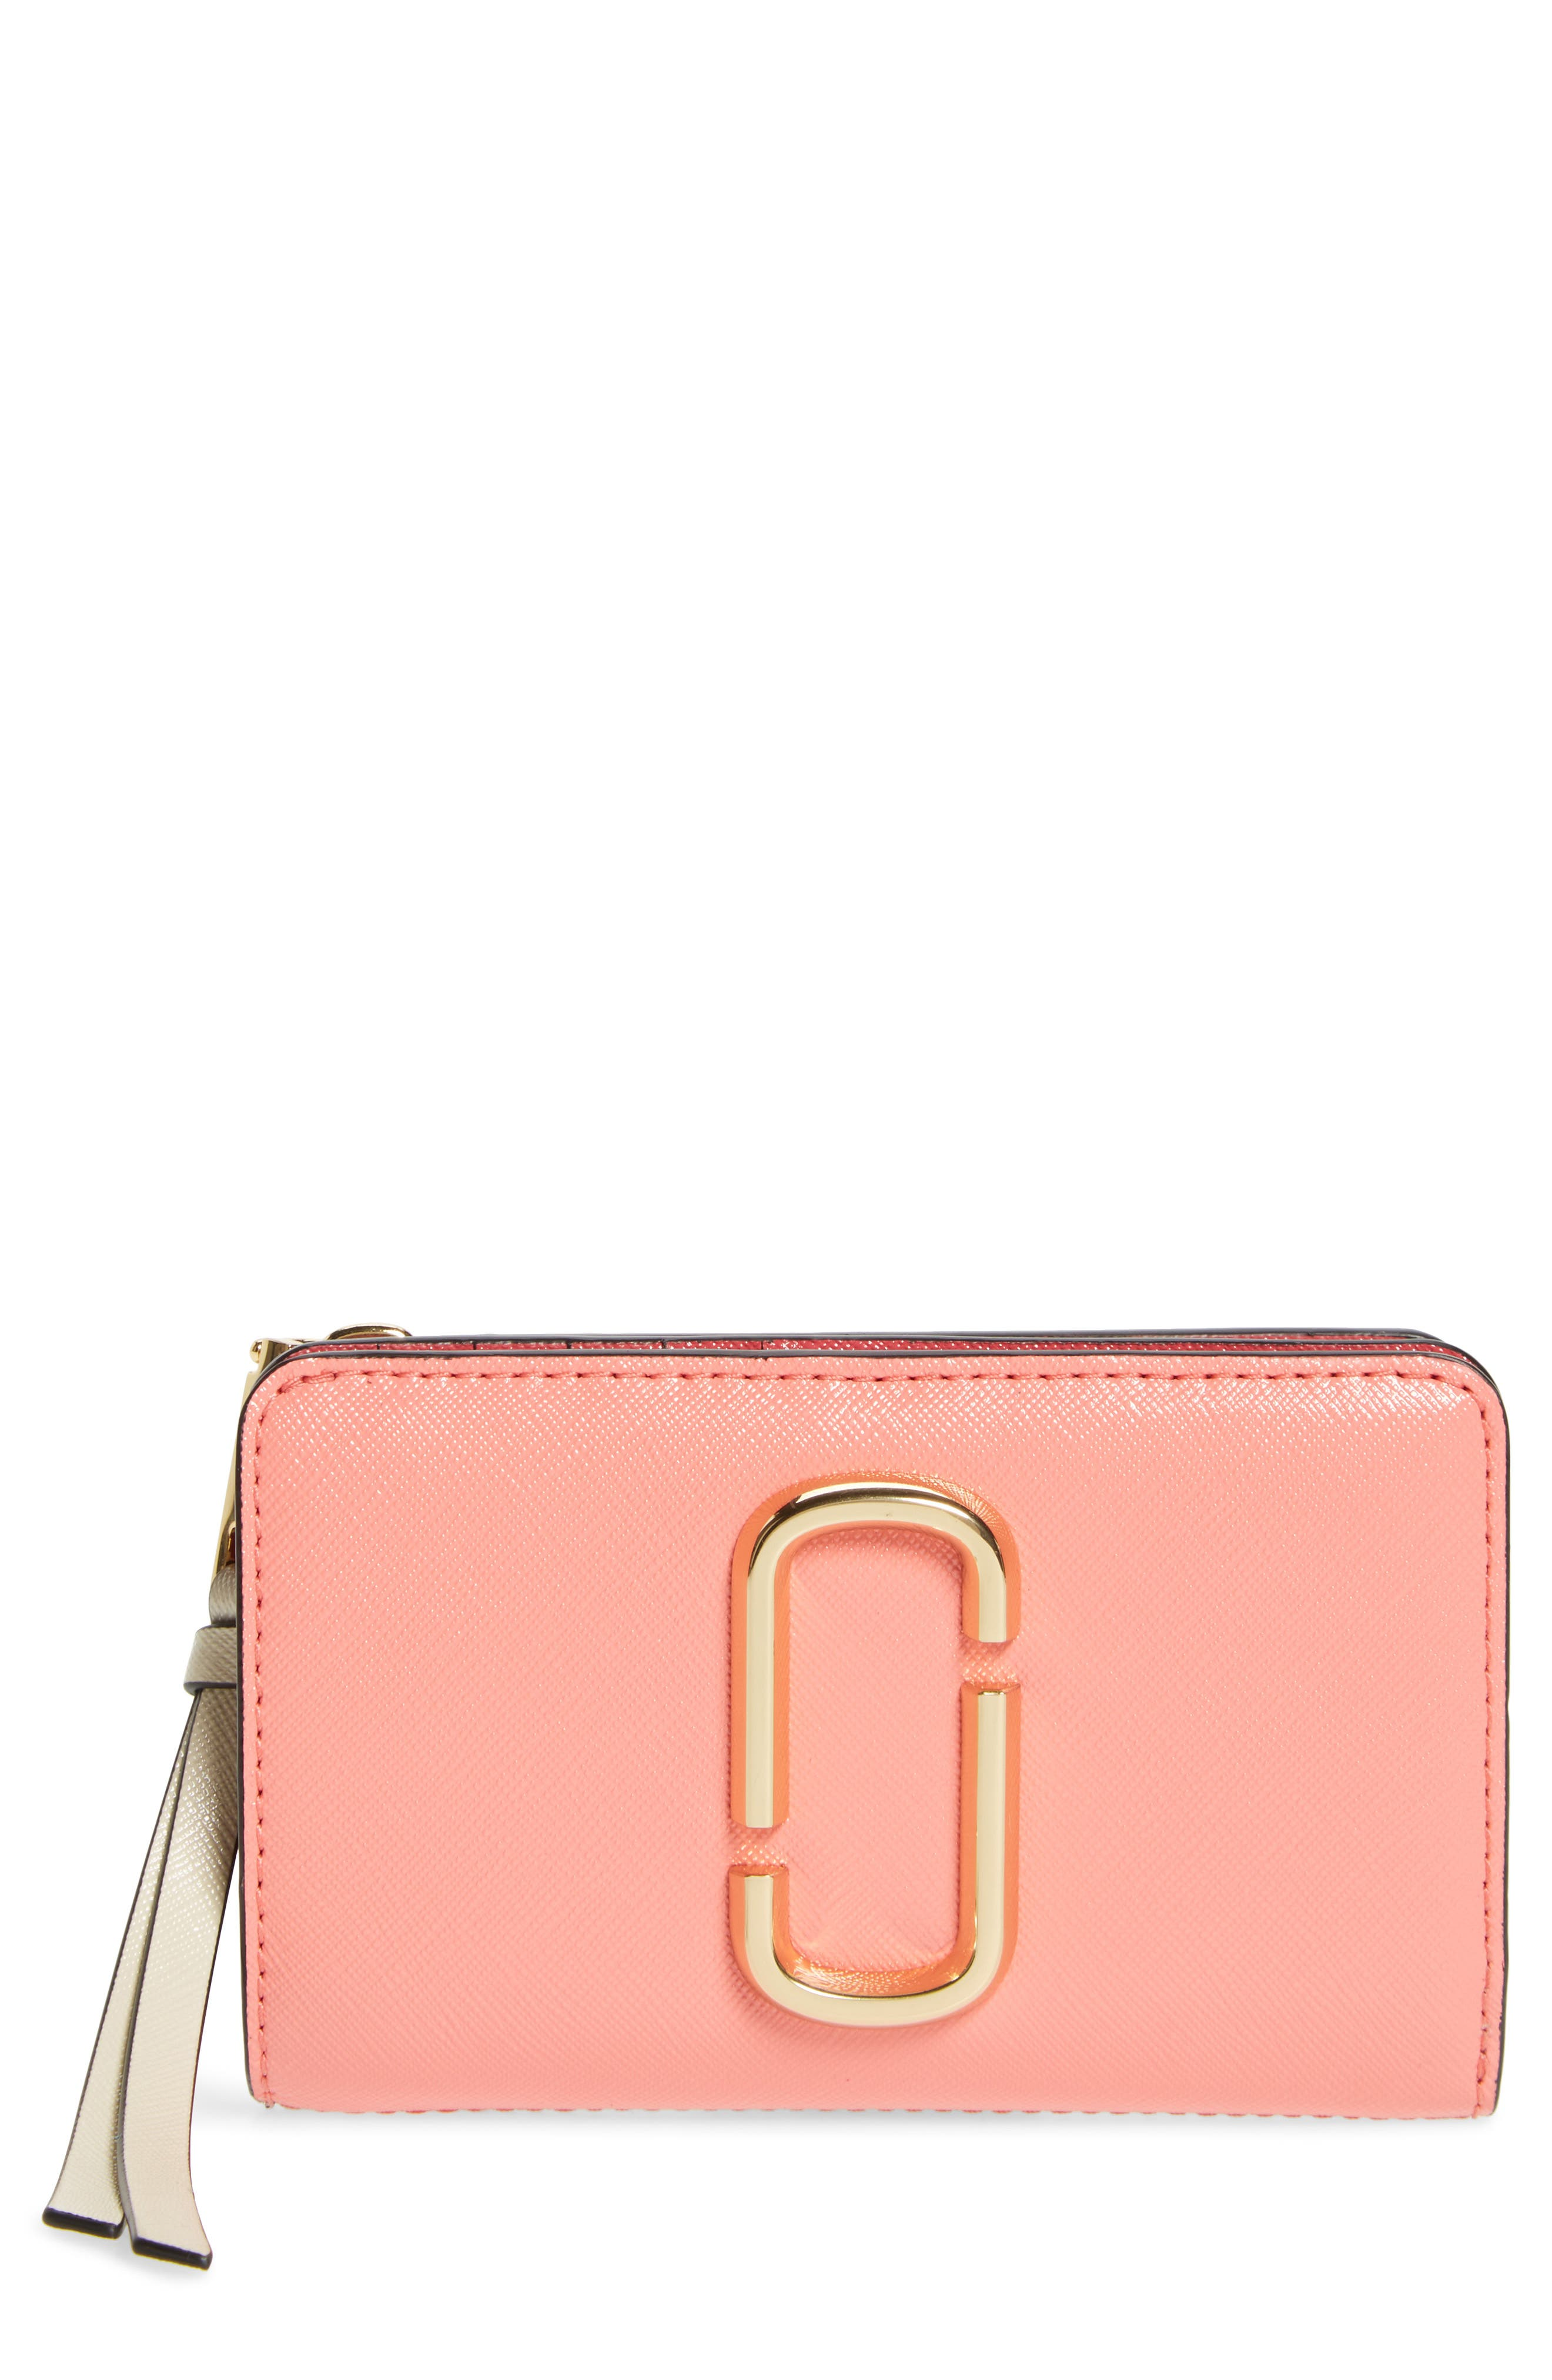 MARC JACOBS Snapshot Compact Leather Wallet